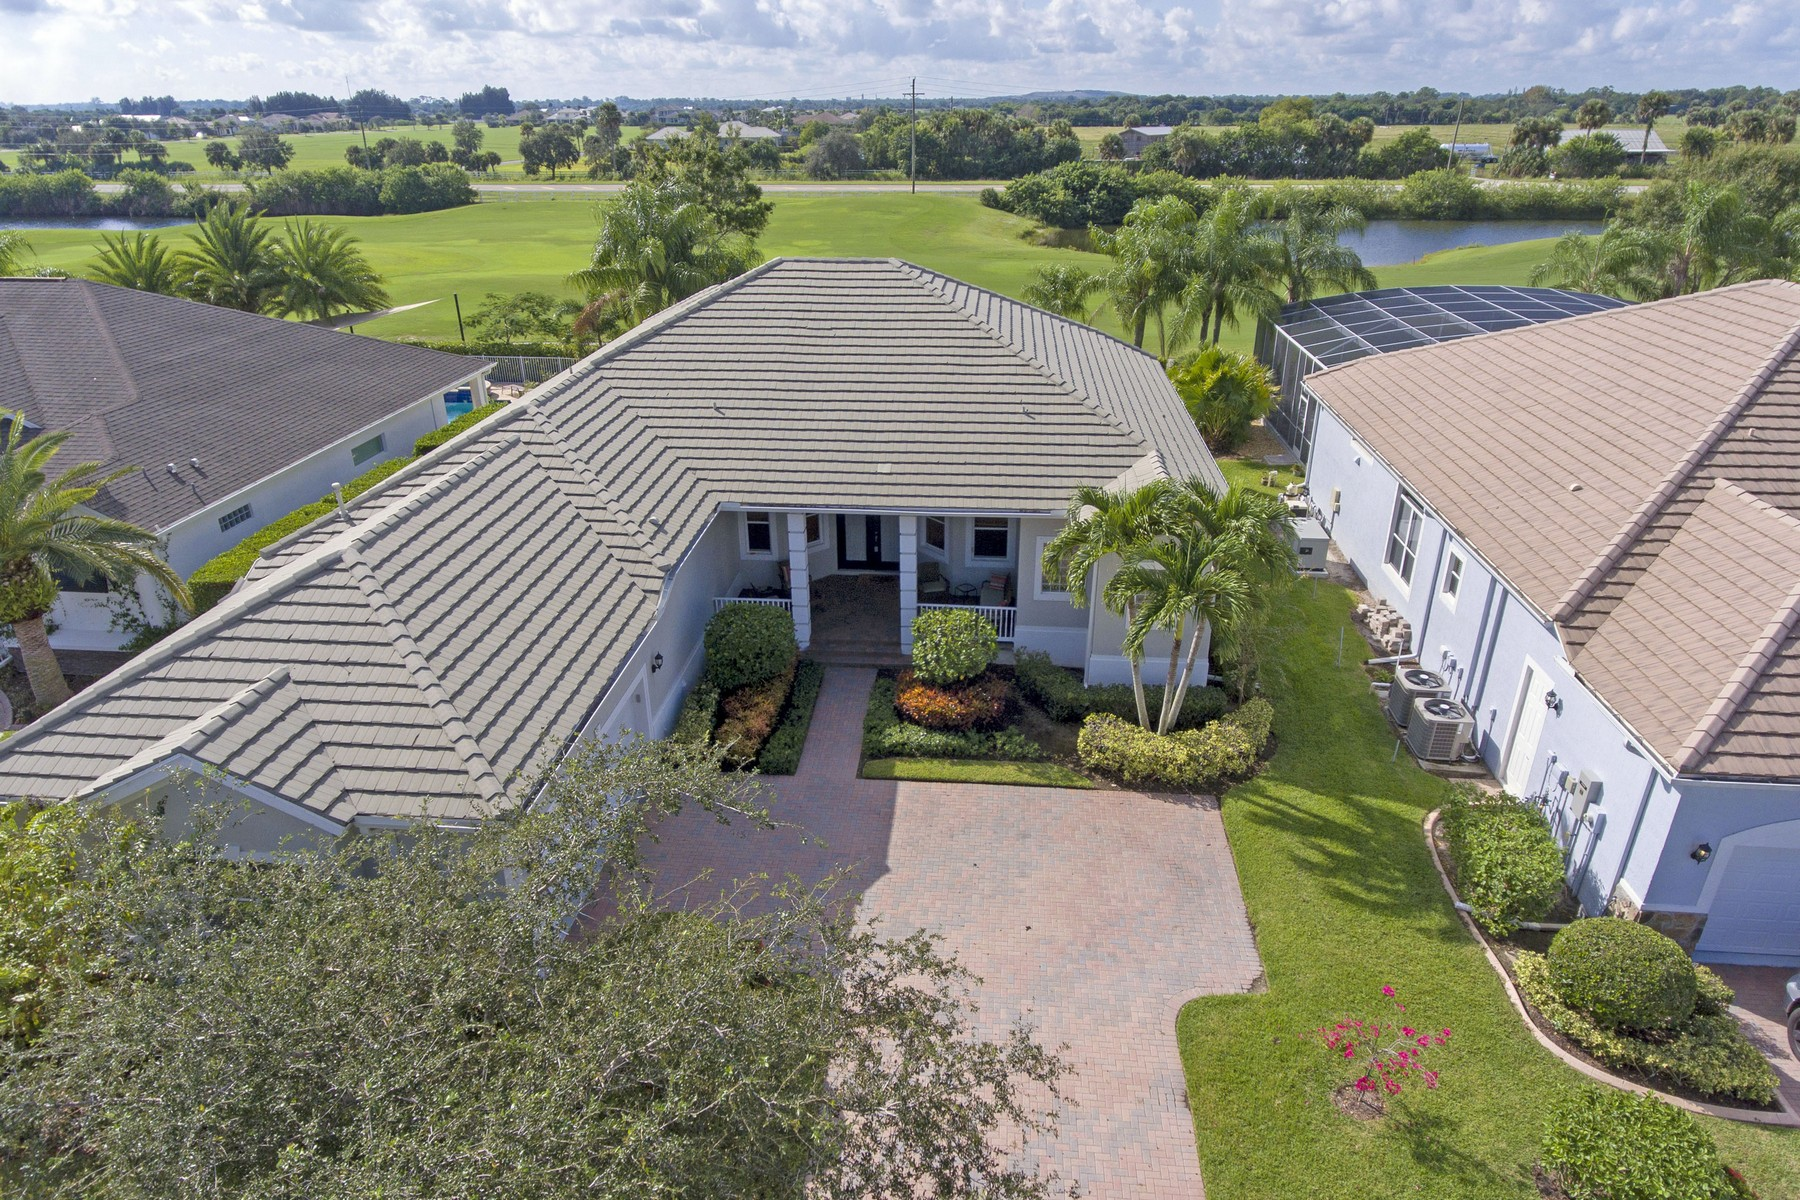 Property for Sale at Can You Even Believe How Awesome It Is? 7647 S Village Square Vero Beach, Florida 32963 United States